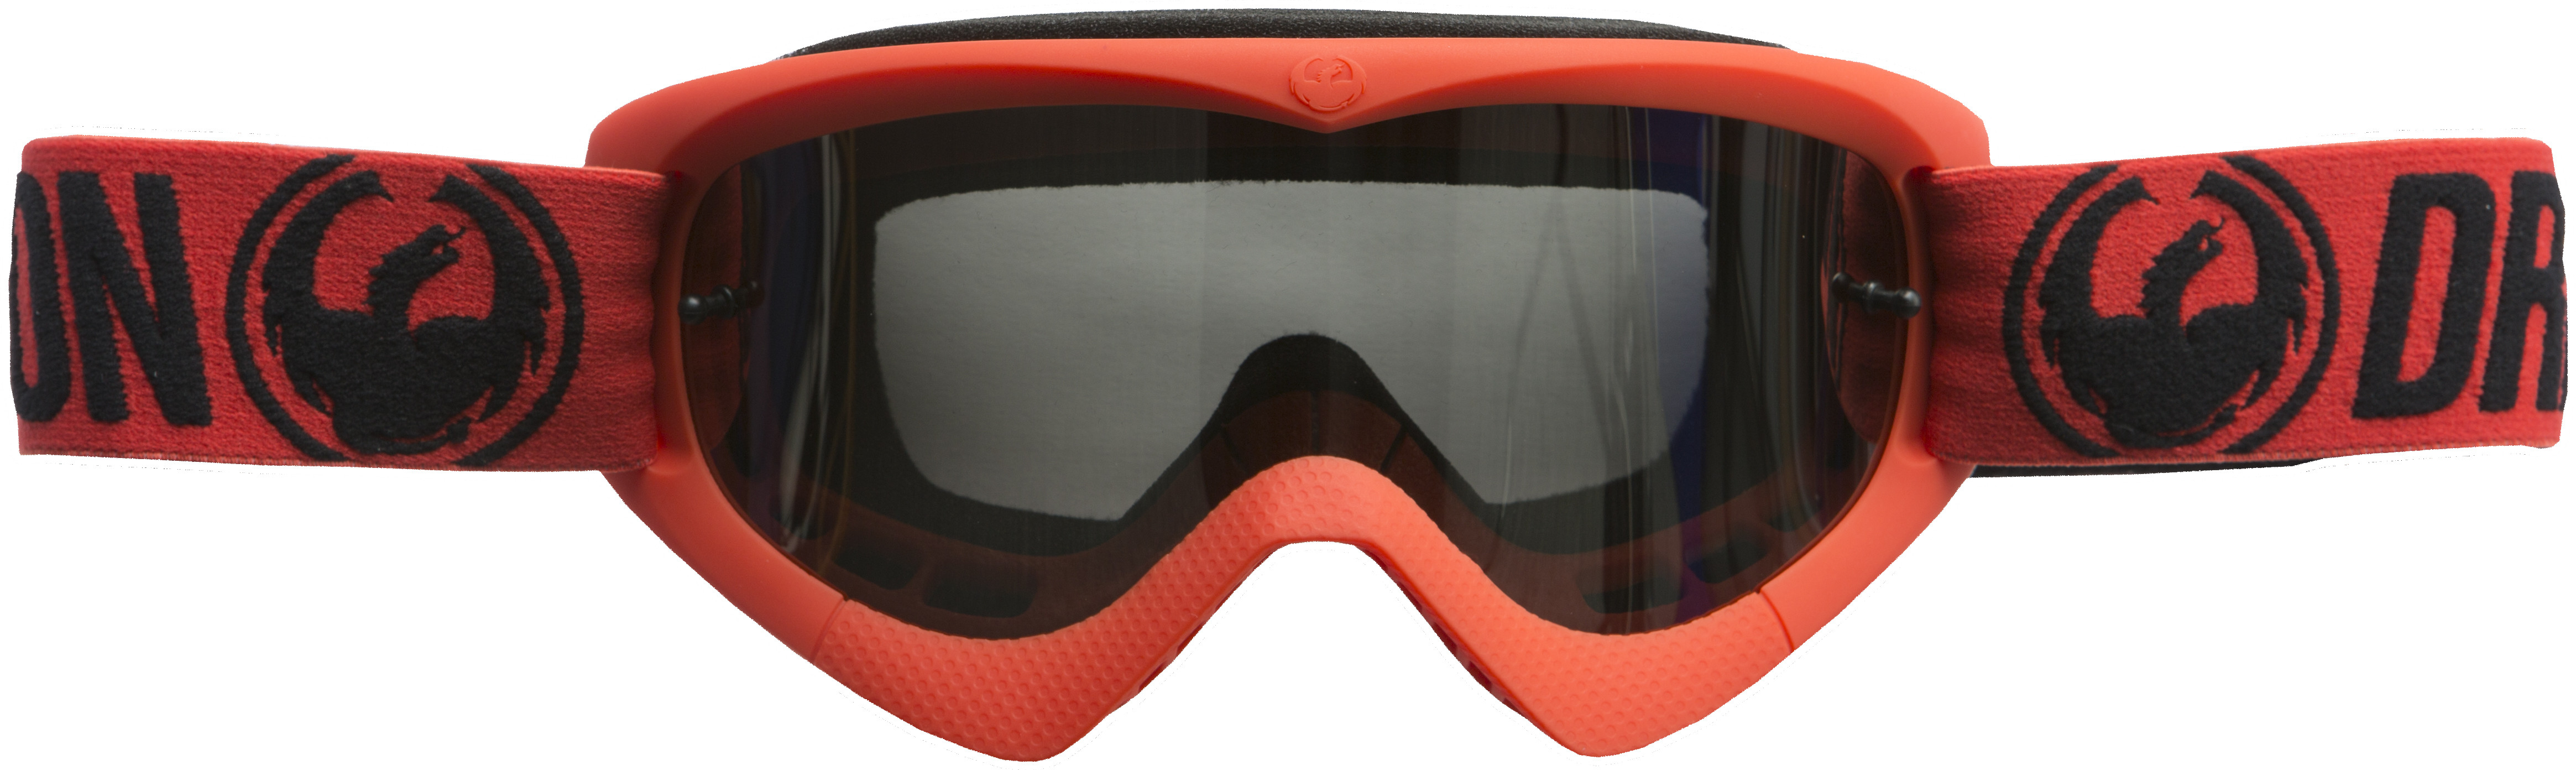 Youth Mx Goggle Break Red W/Ion Lens